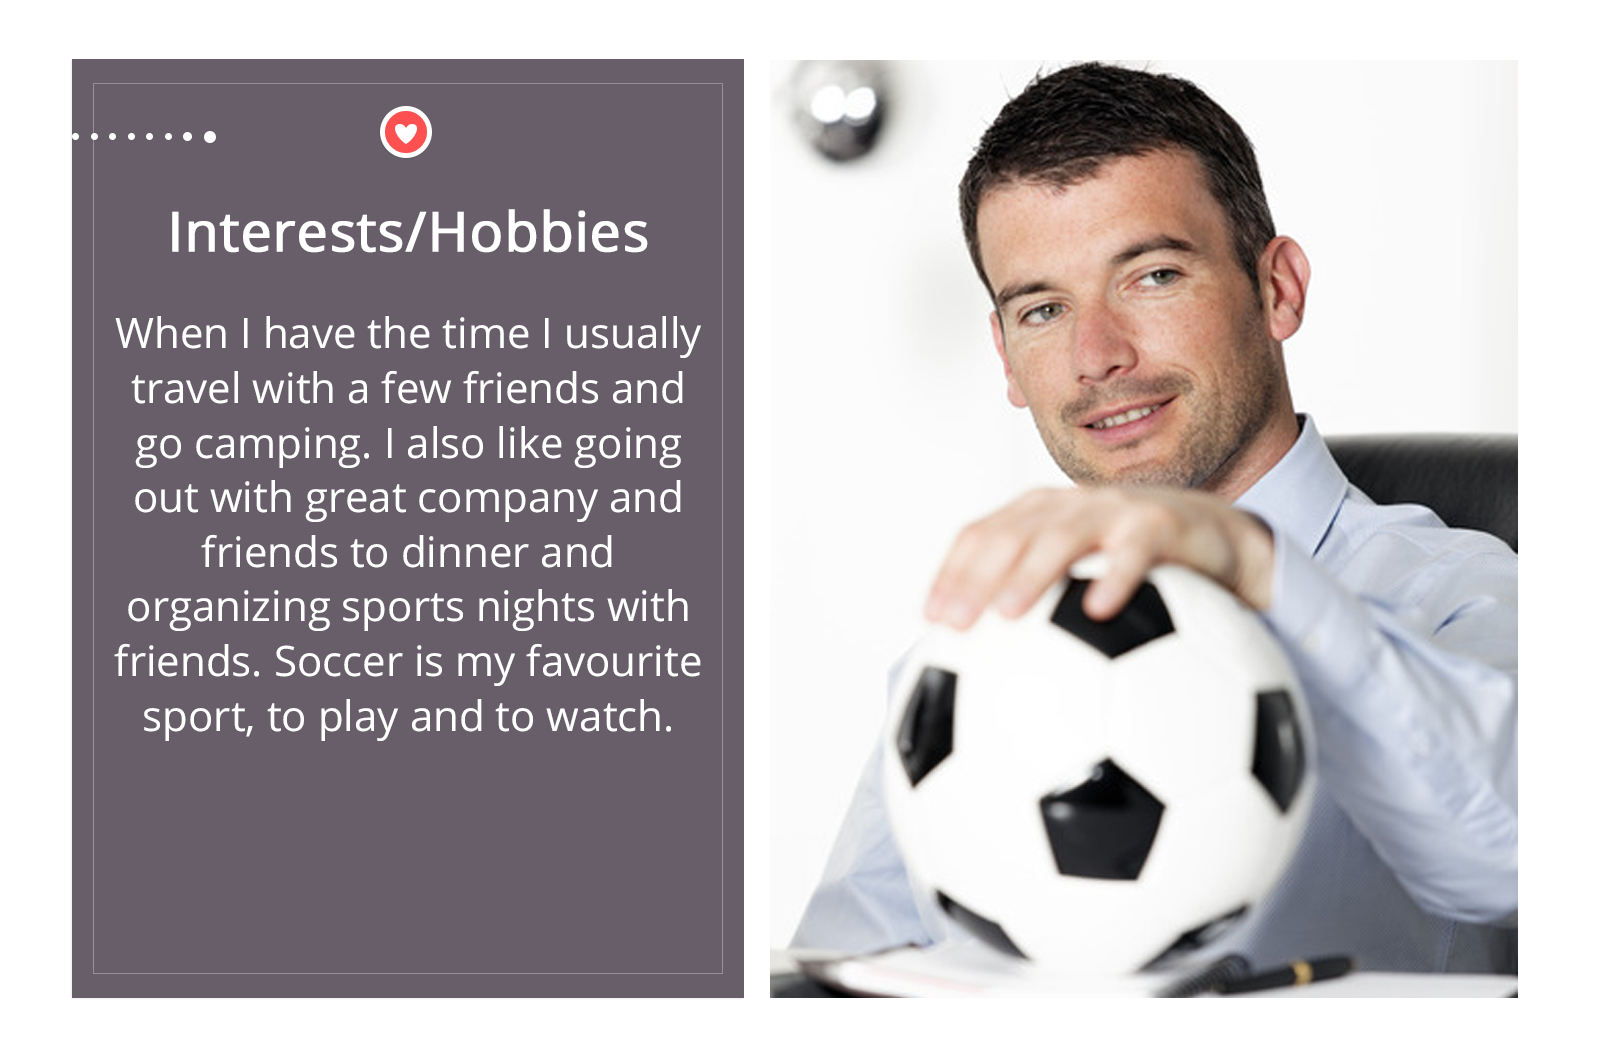 Blog  Select Introductions - GREG-interests.hobbies